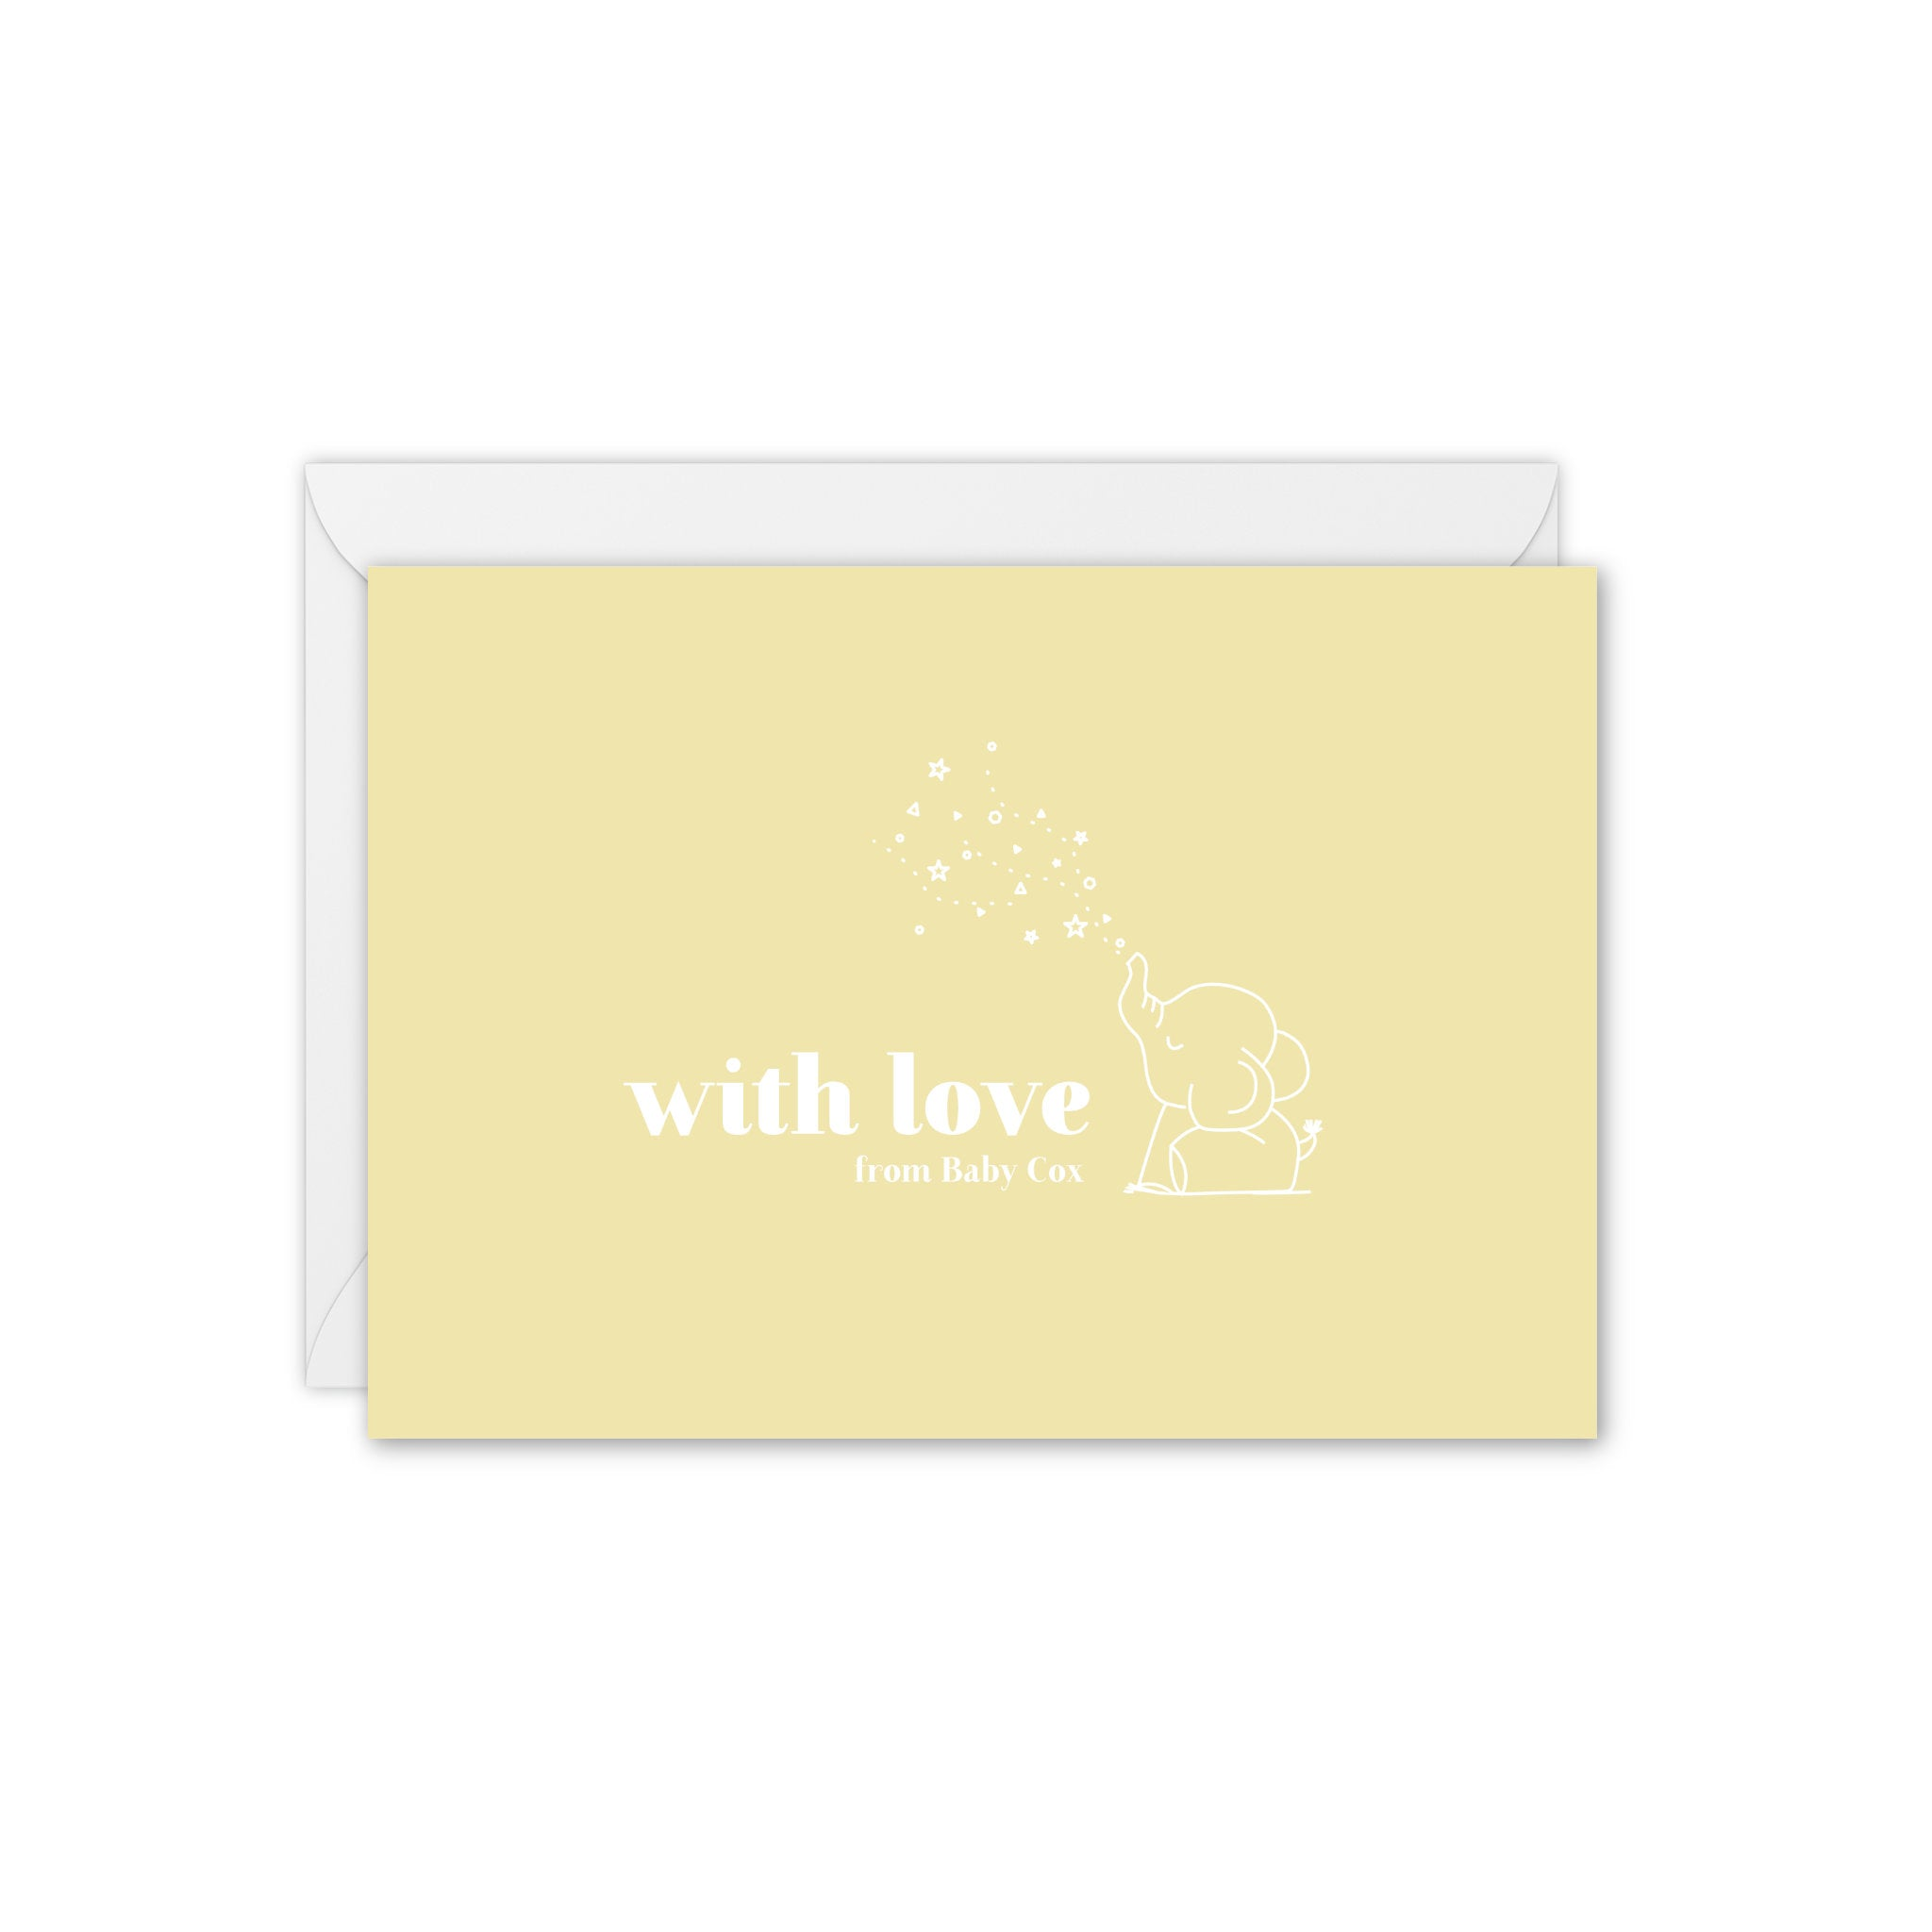 Baby Elephant Personalised Baby / Baby Shower Thank You Card - Yellow and White